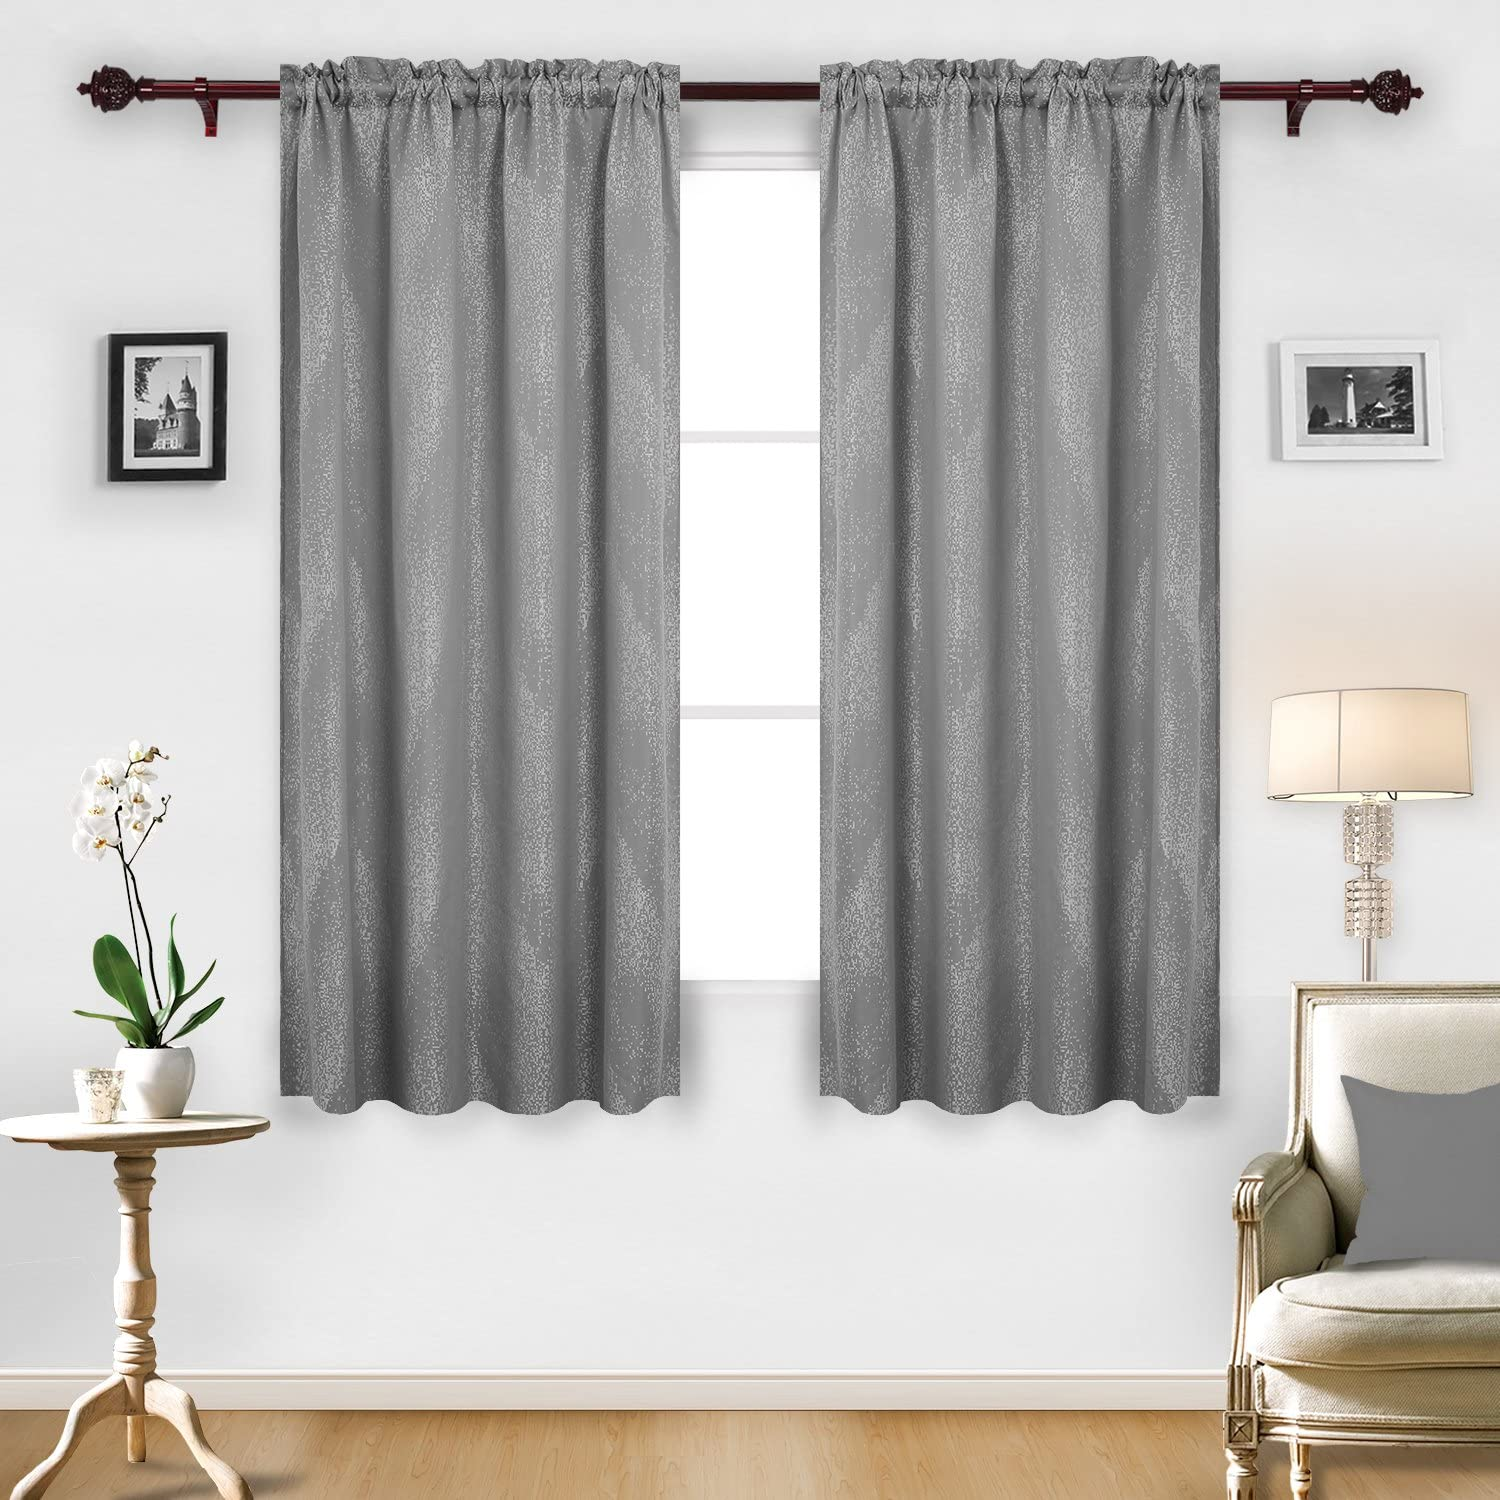 52X63Inch Grey Deconovo Rod Pocket Luxurious Jacquard Curtain Panels with Marble Pattern for Living Room